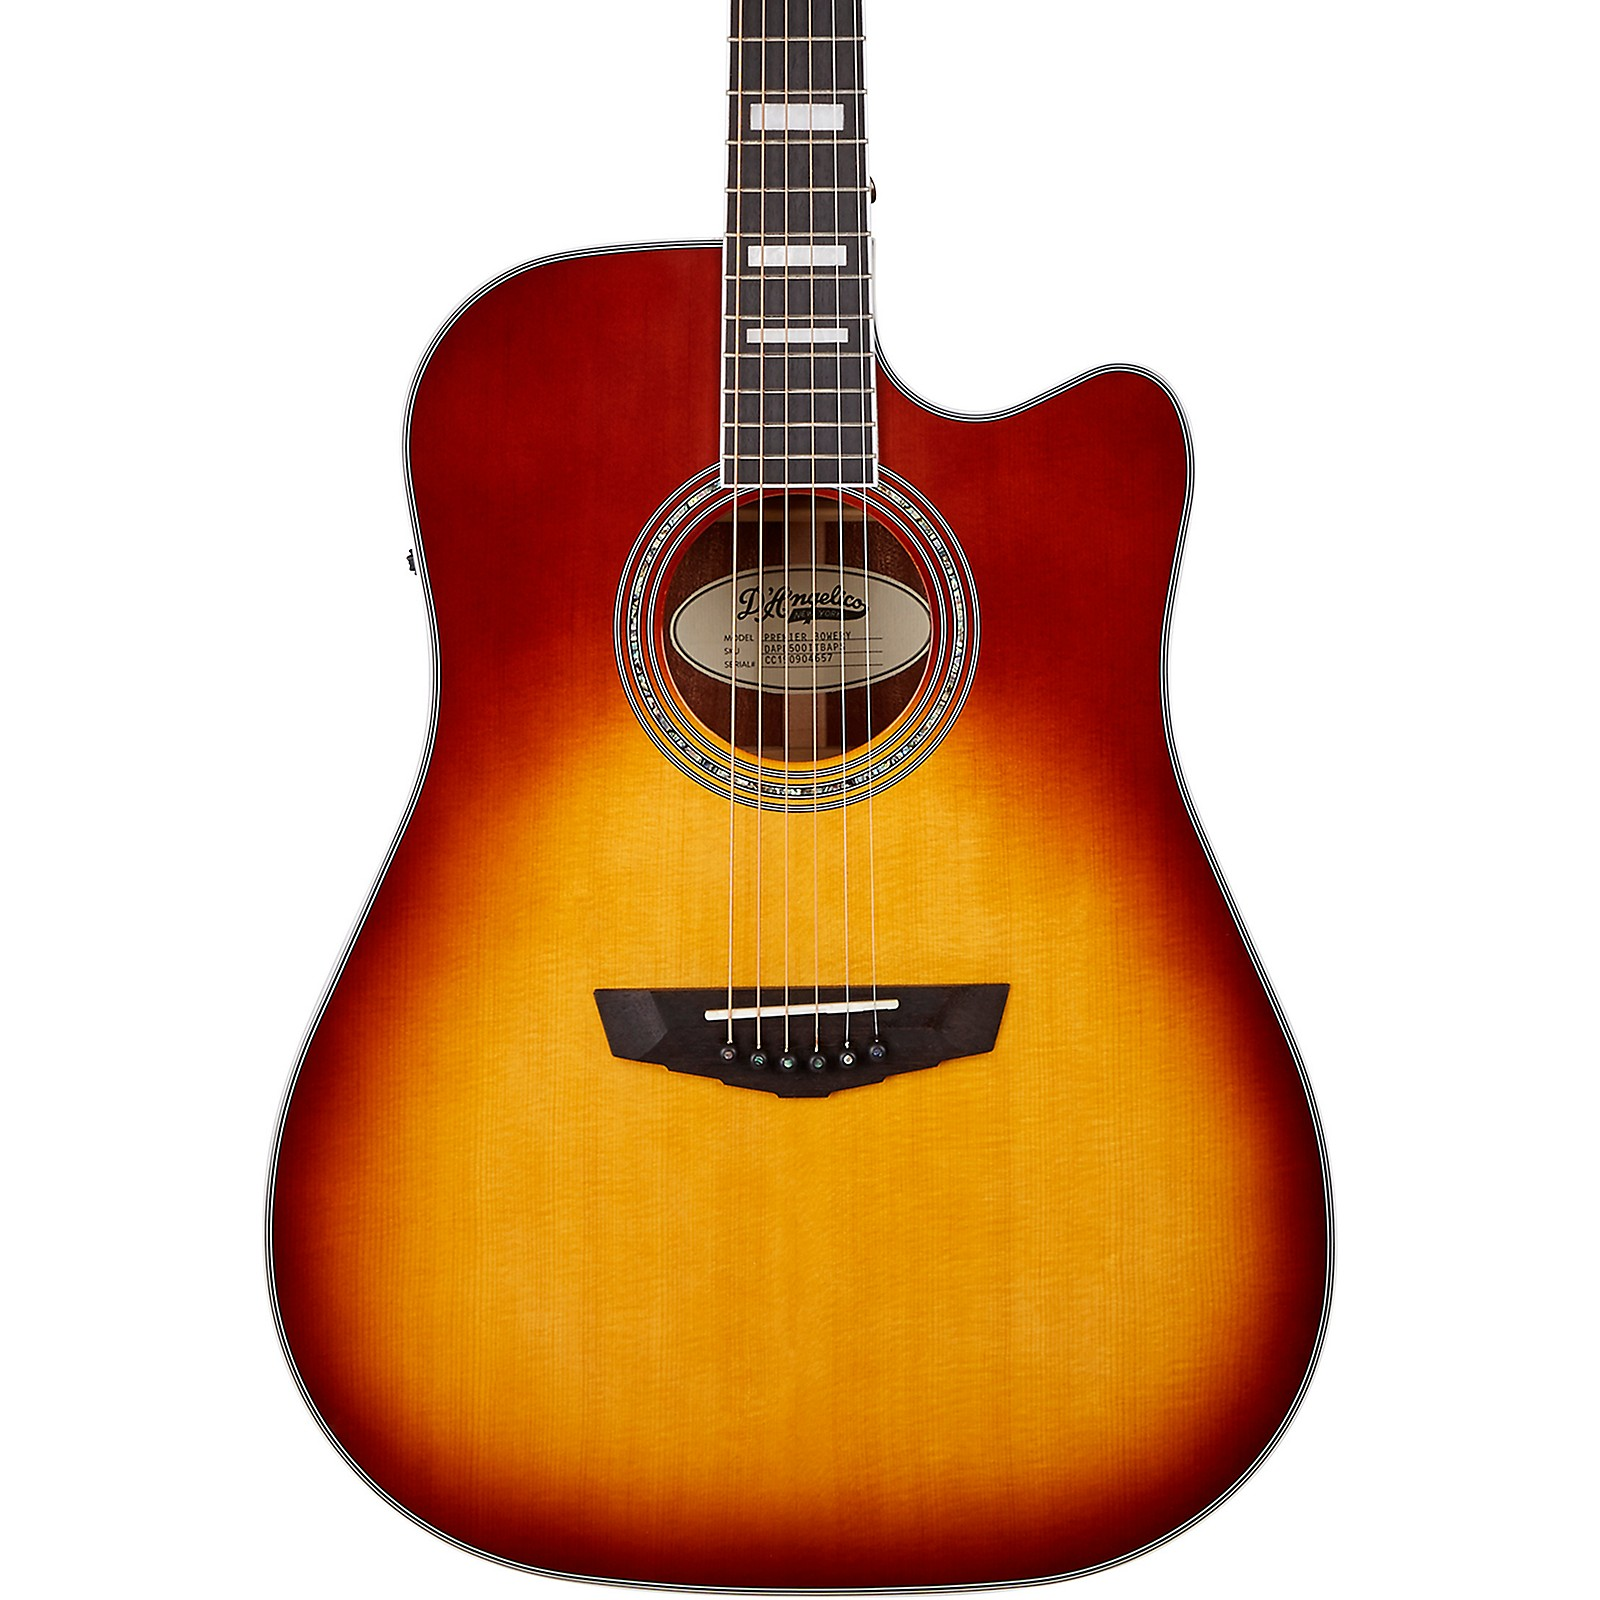 D'Angelico Premier Series Bowery Cutaway Dreadnought Acoustic-Electric Guitar